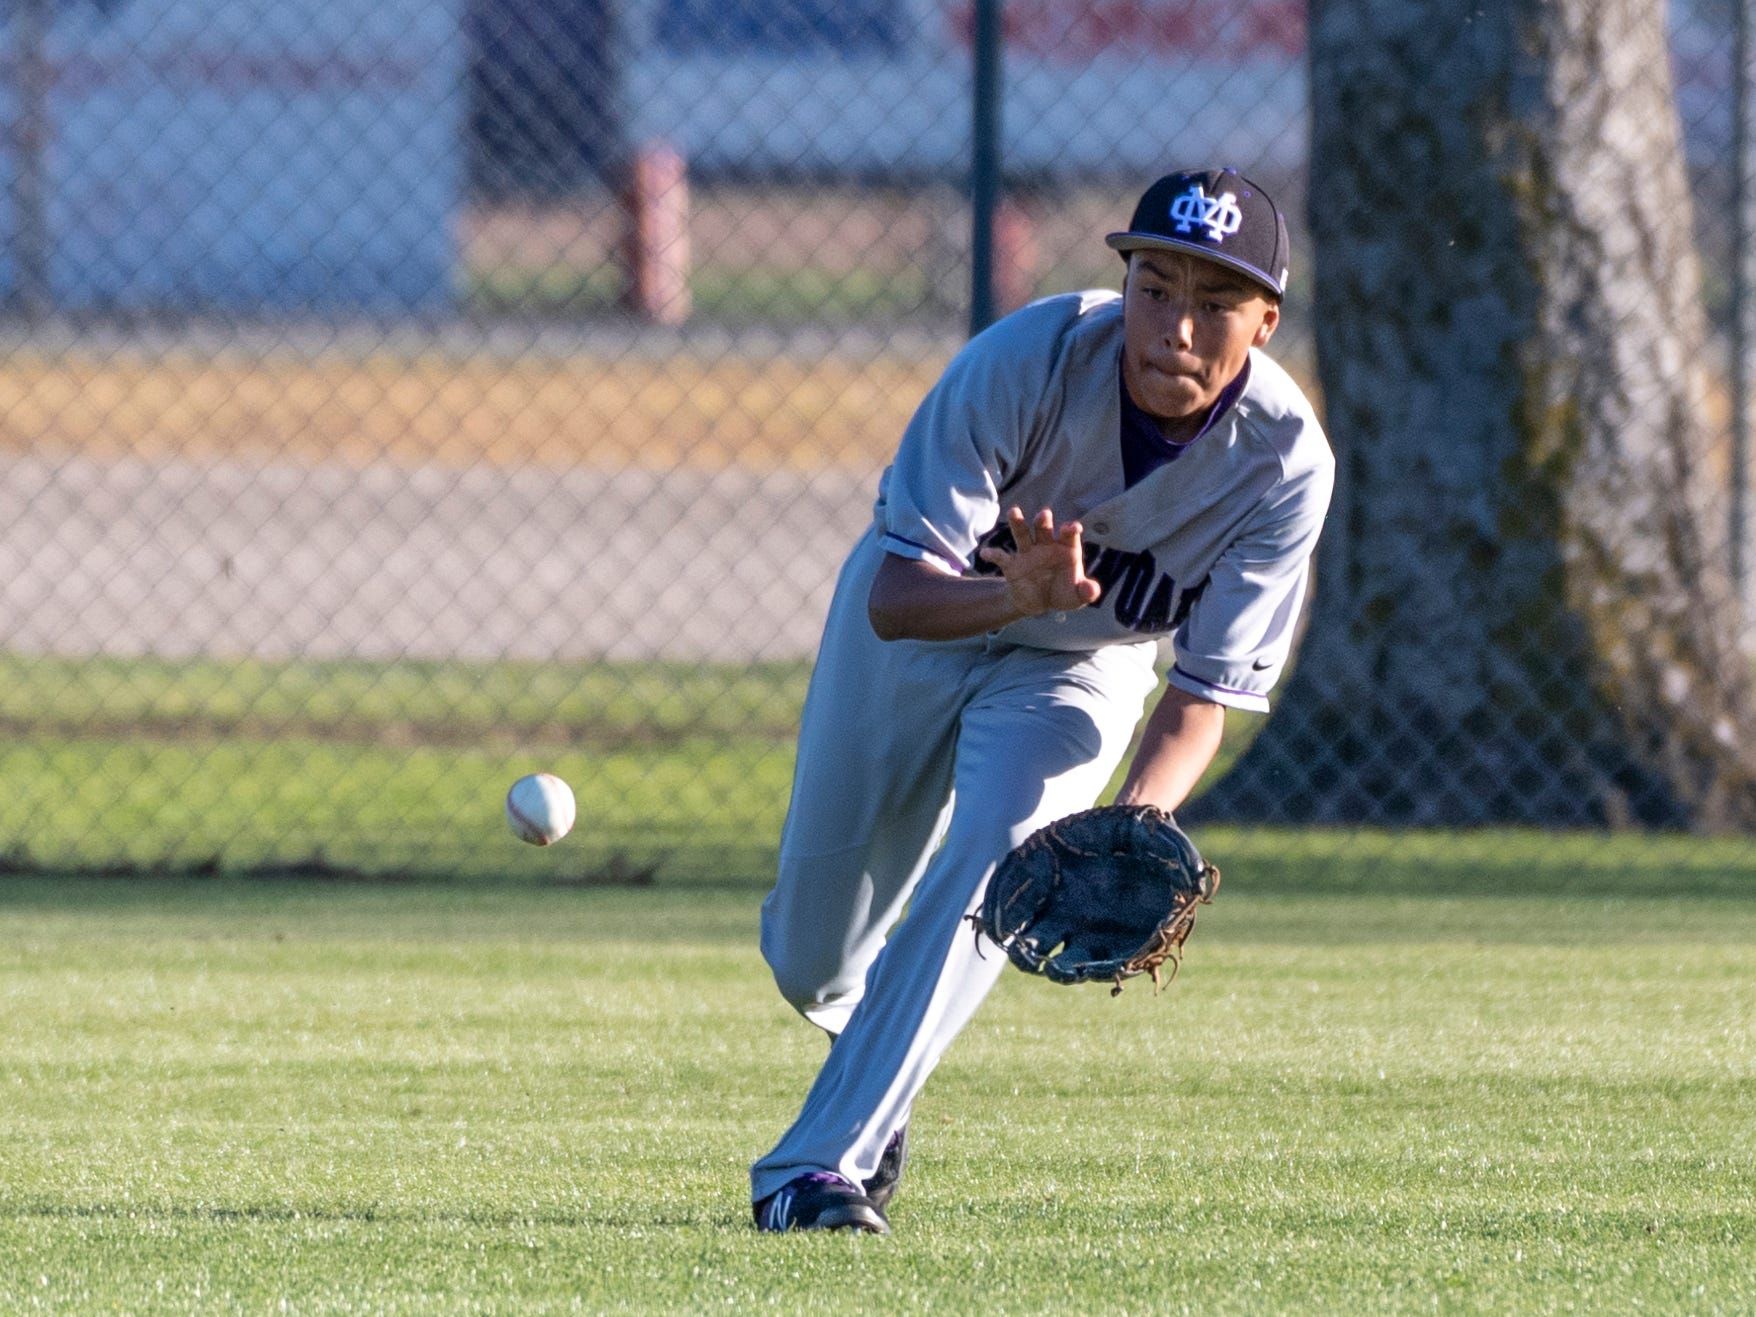 \mo06\ fields a hit ball agsinstTulare Western in an East Yosemite League high school baseball game on Thursday, March 14, 2019.